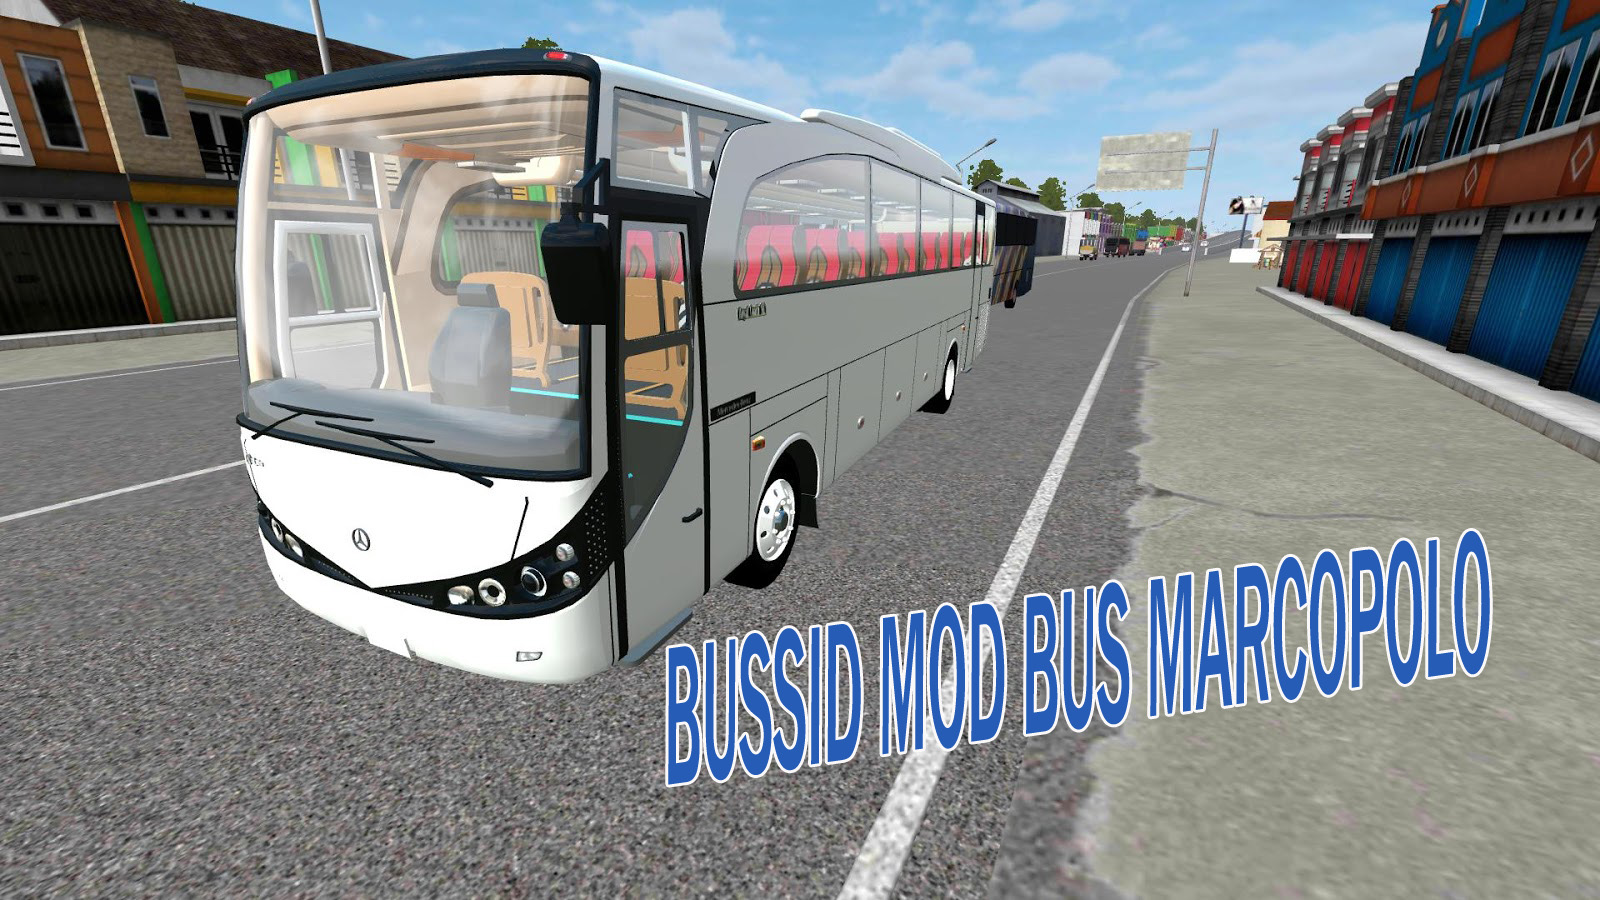 Download BUSSID Mod Bus Marcopolo